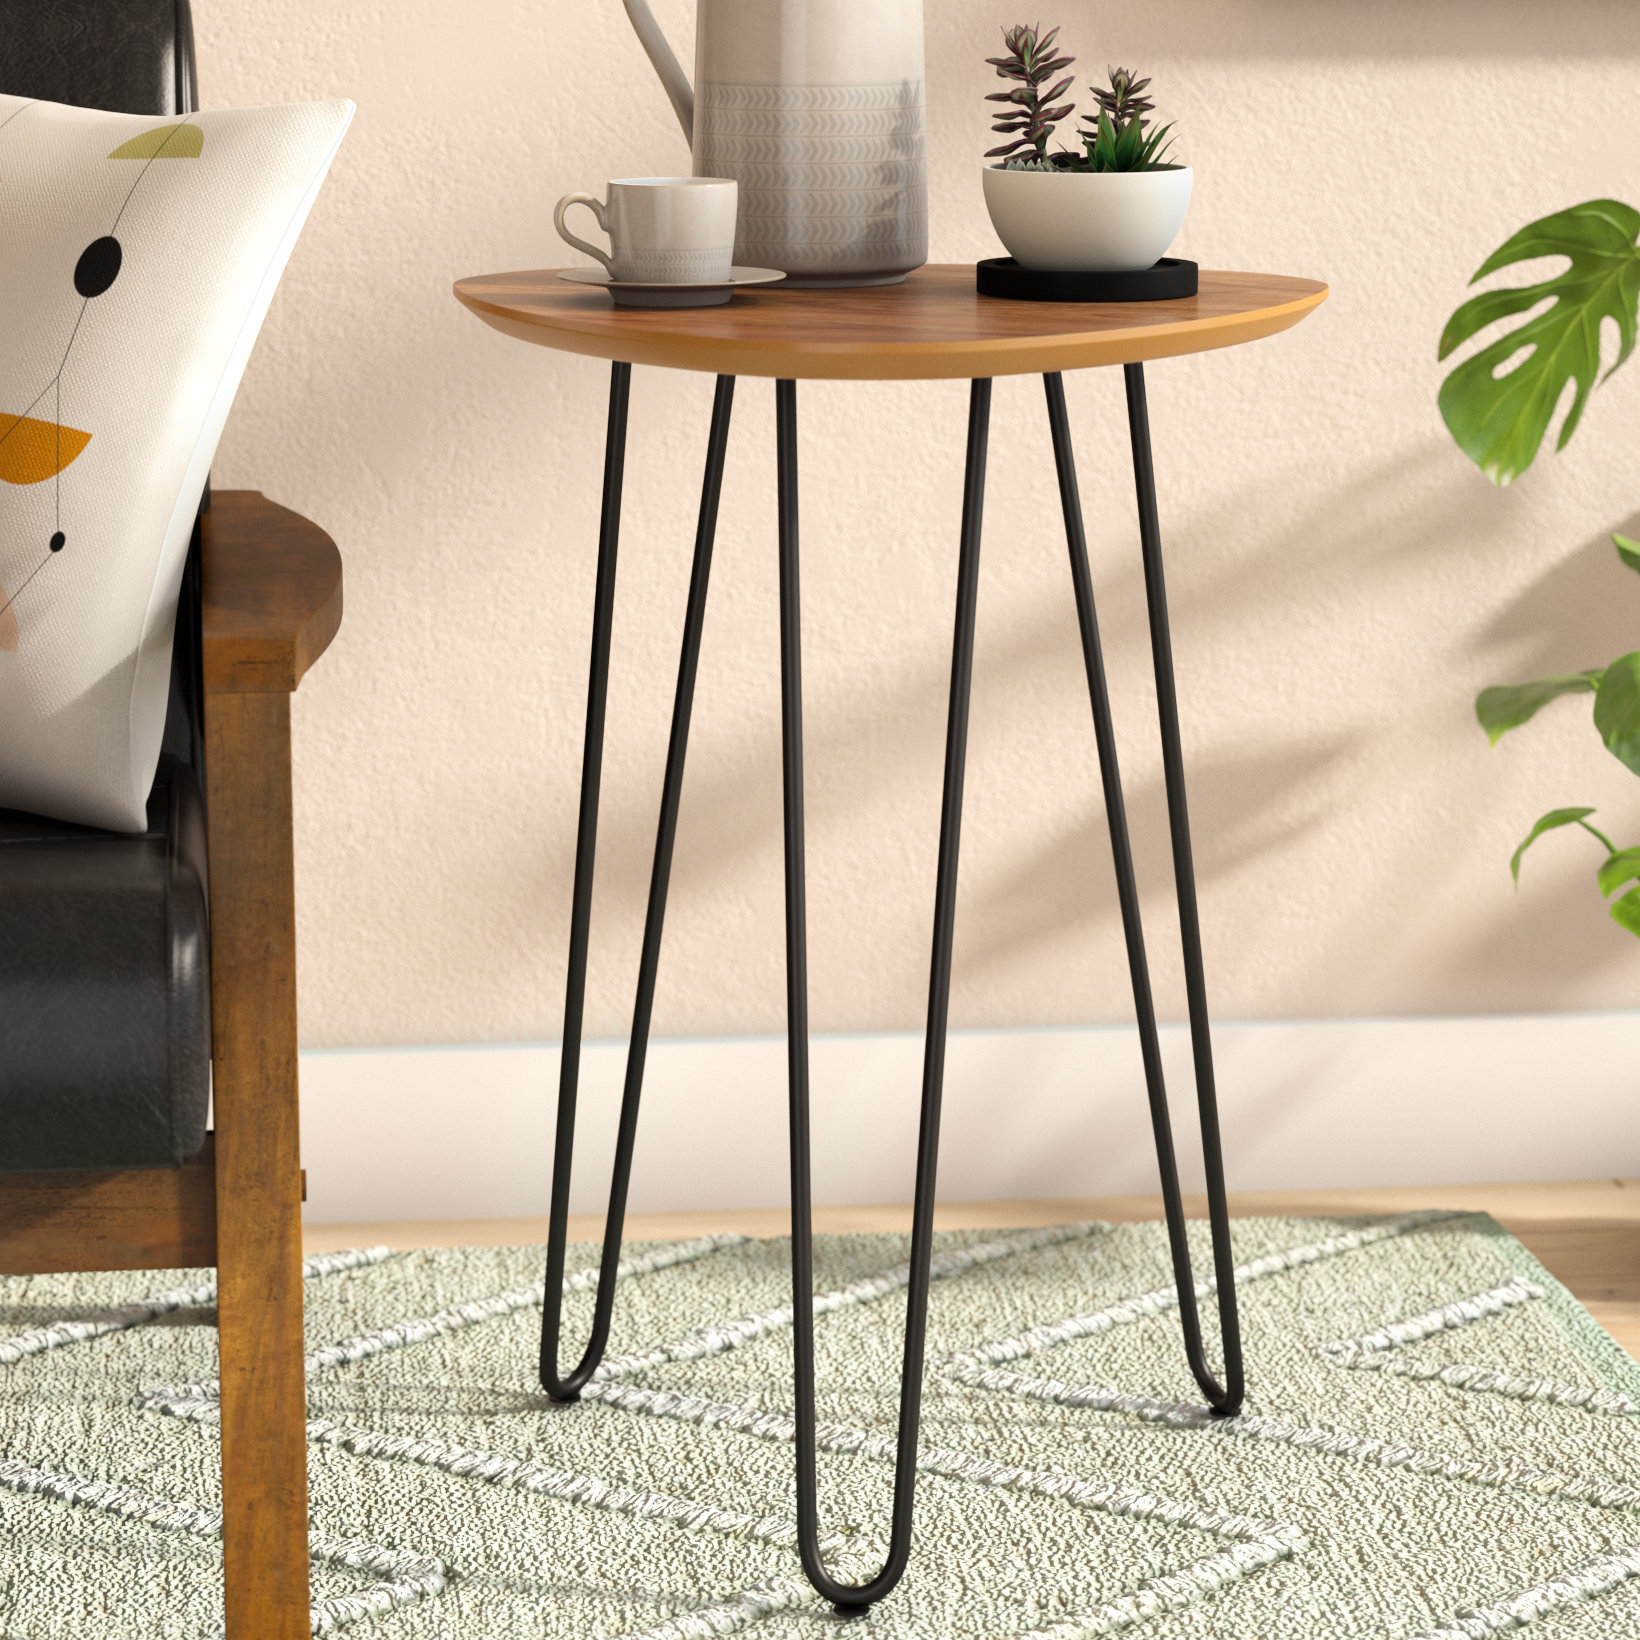 wrought studio goldner hairpin leg wood end table reviews accent silver lamps small chest cabinet home decor ornaments industrial metal garden rustic looking tables colorful